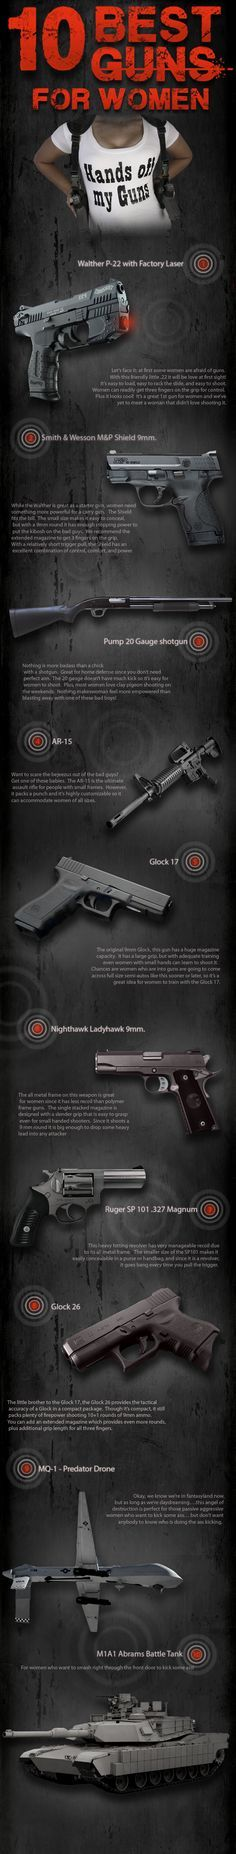 The 10 Best Guns for Women... I'll take one of each!